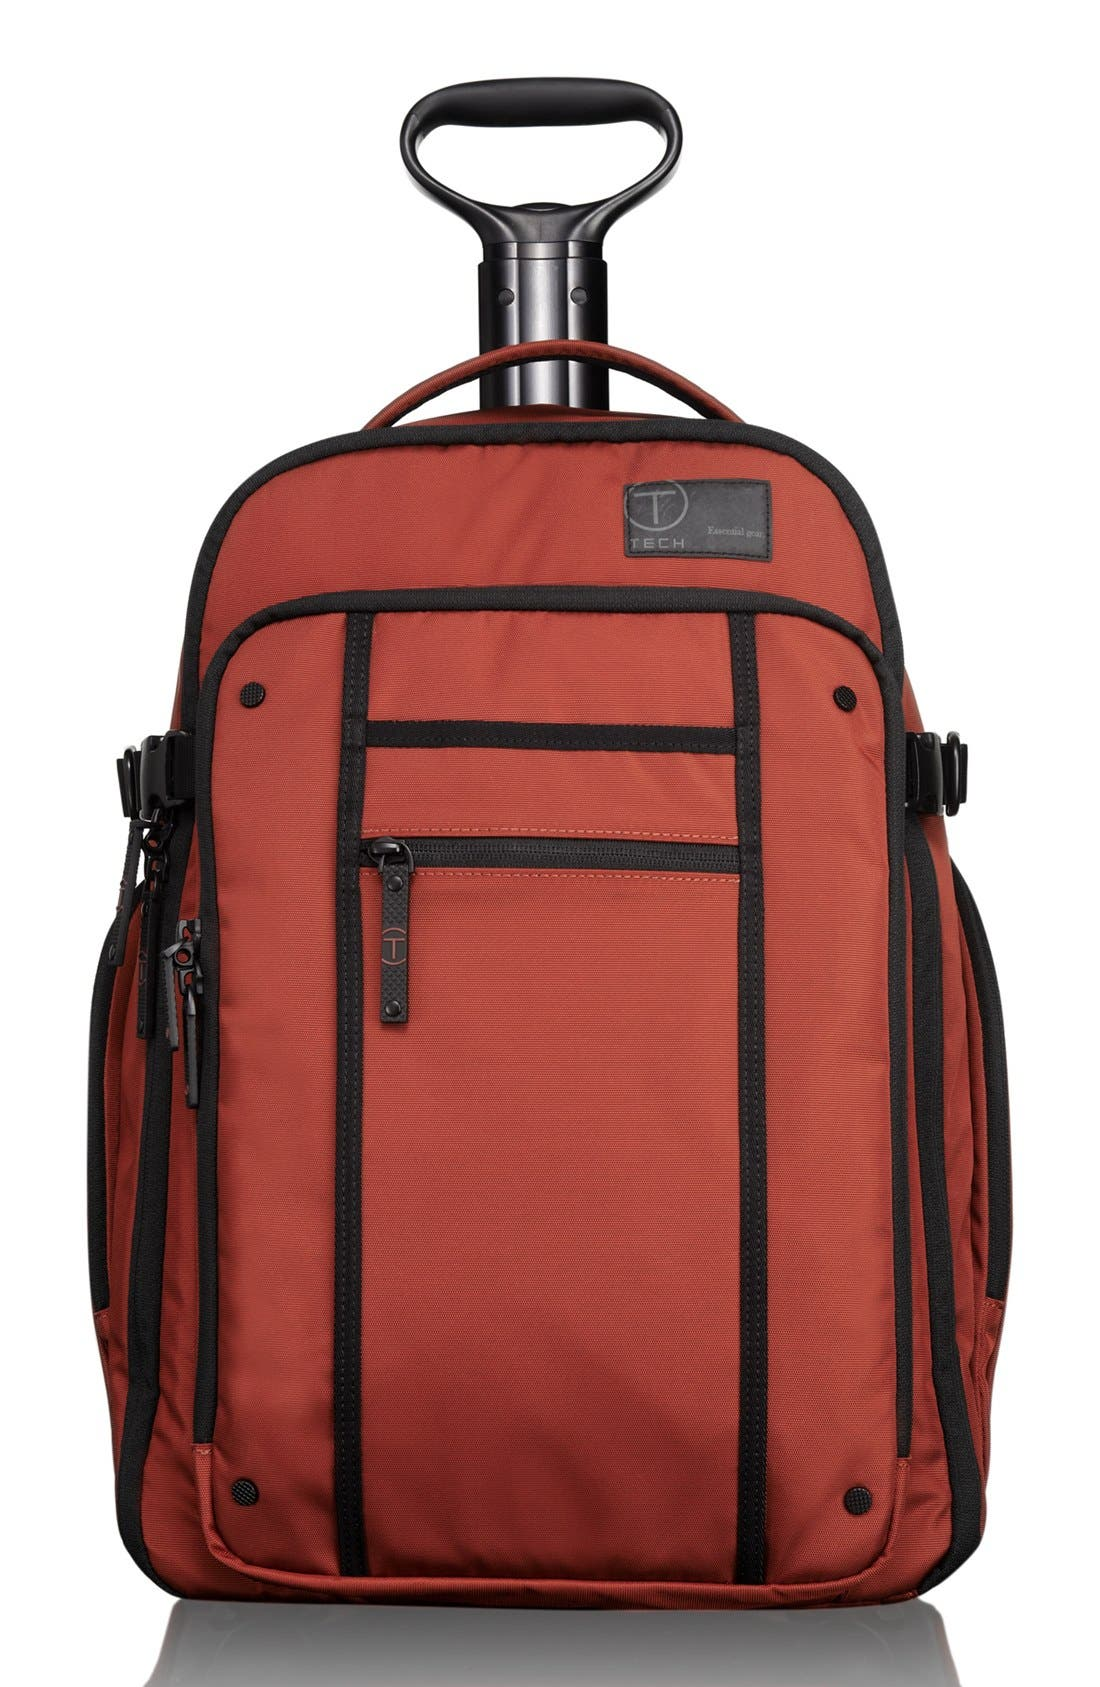 Main Image - T-Tech by Tumi 'Icon - Jerry' Wheeled Backpack